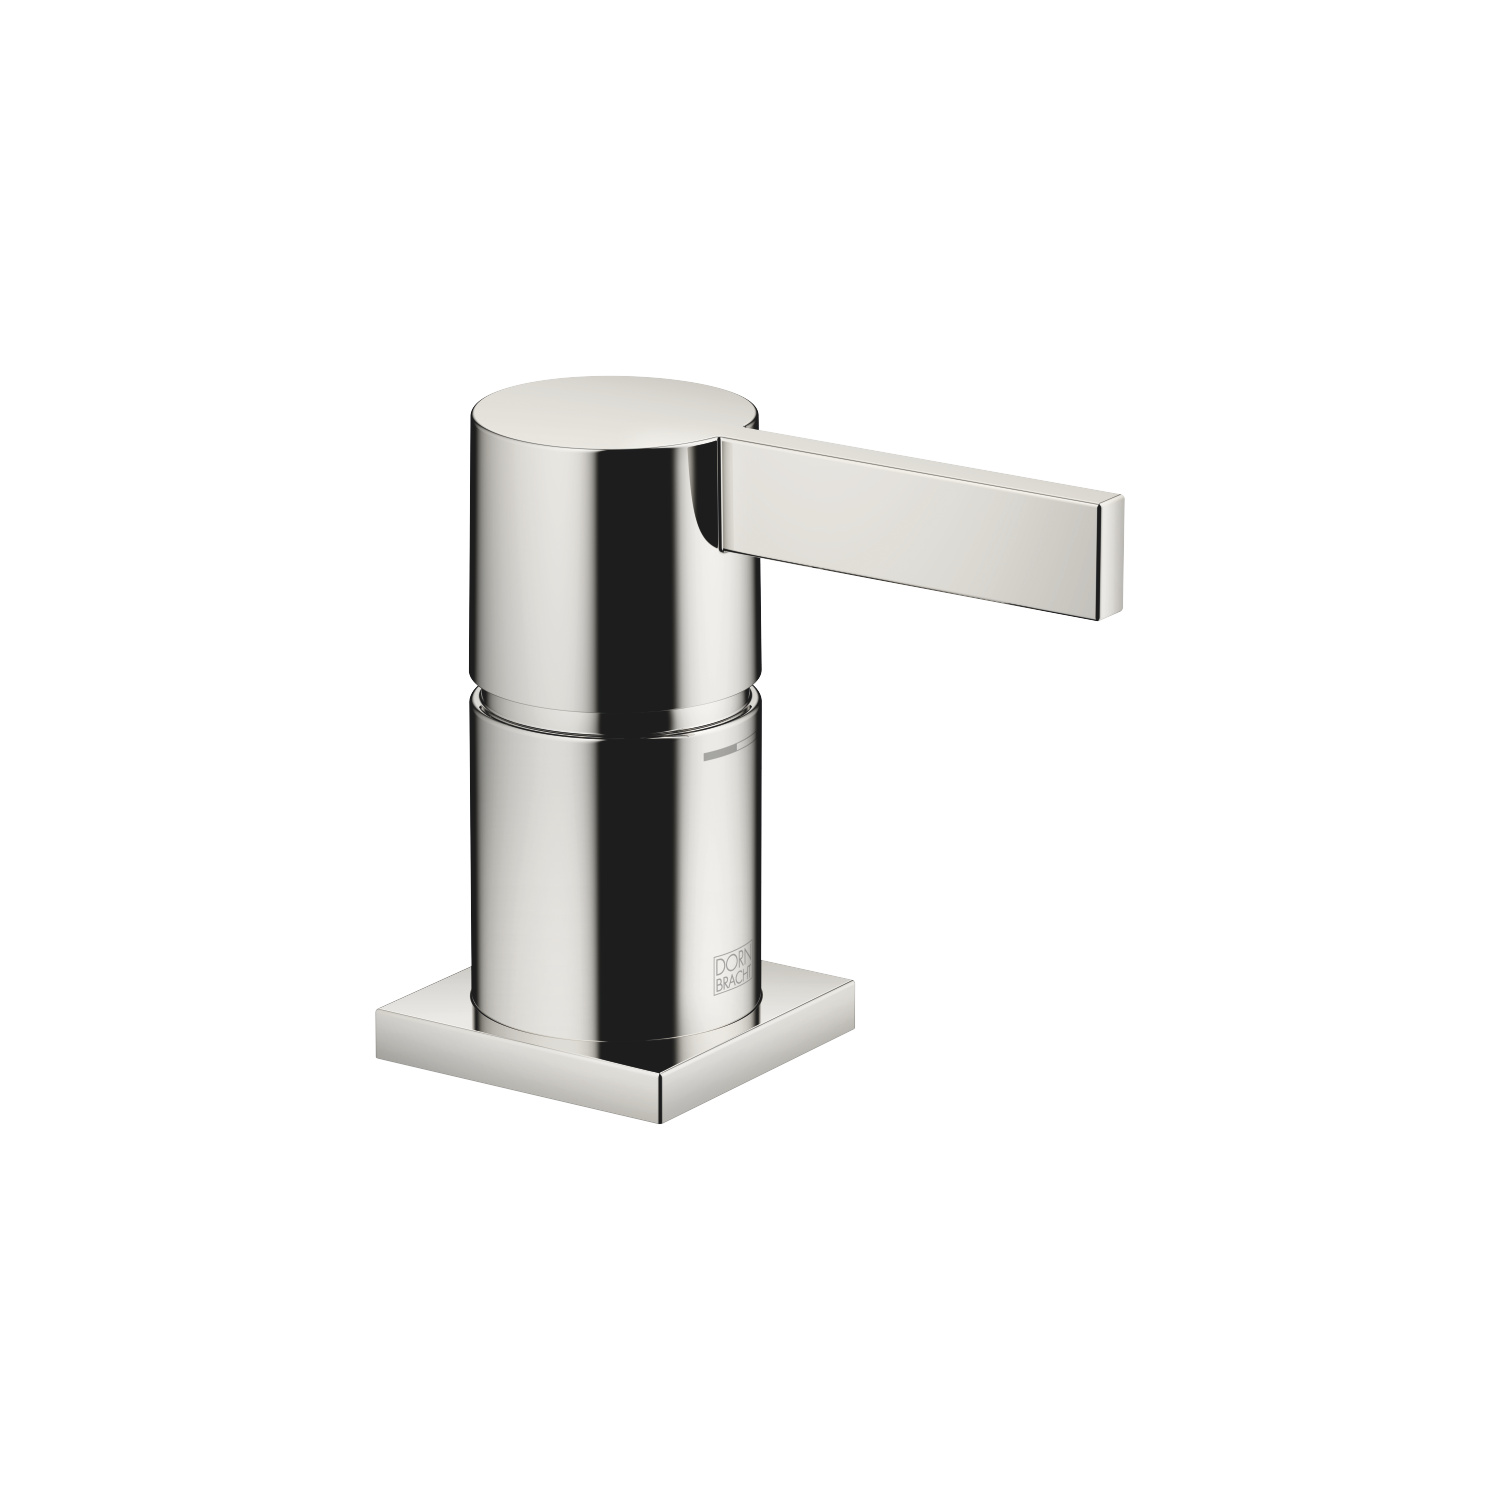 Single-lever bath mixer for bath rim or tile edge installation - platinum